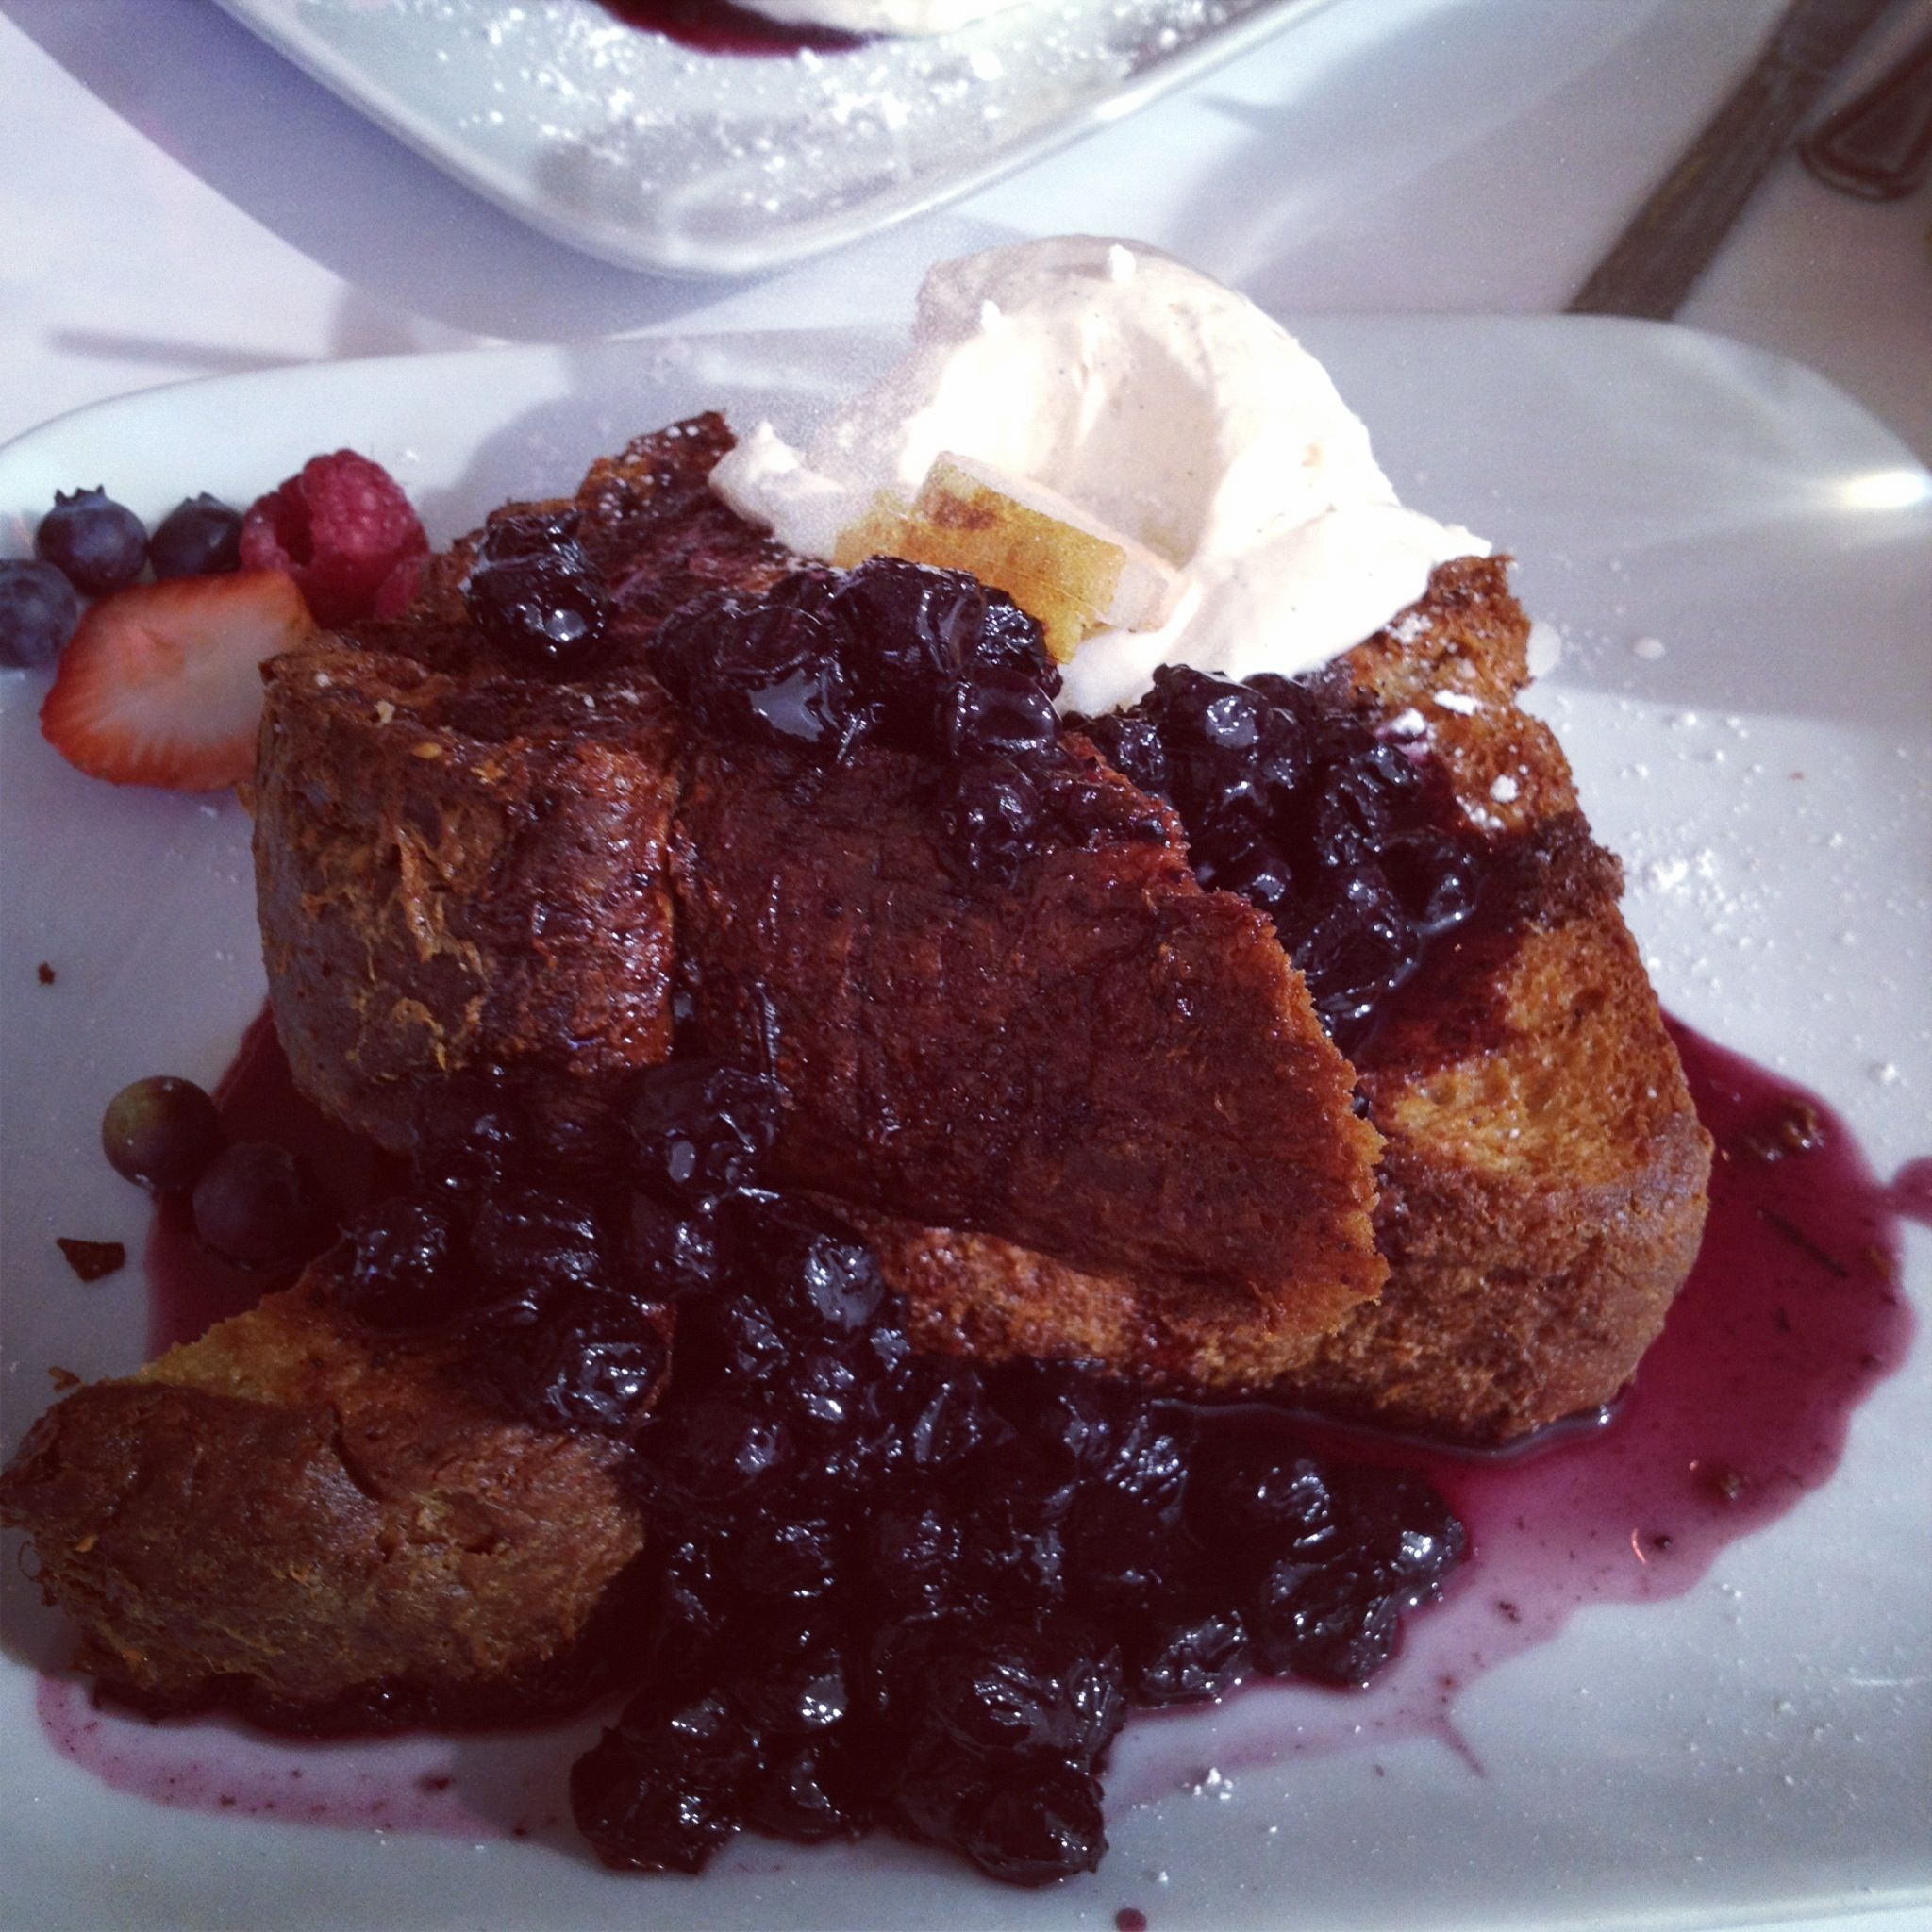 Brioche French Toast From Europane In Pasadena, CA. Great